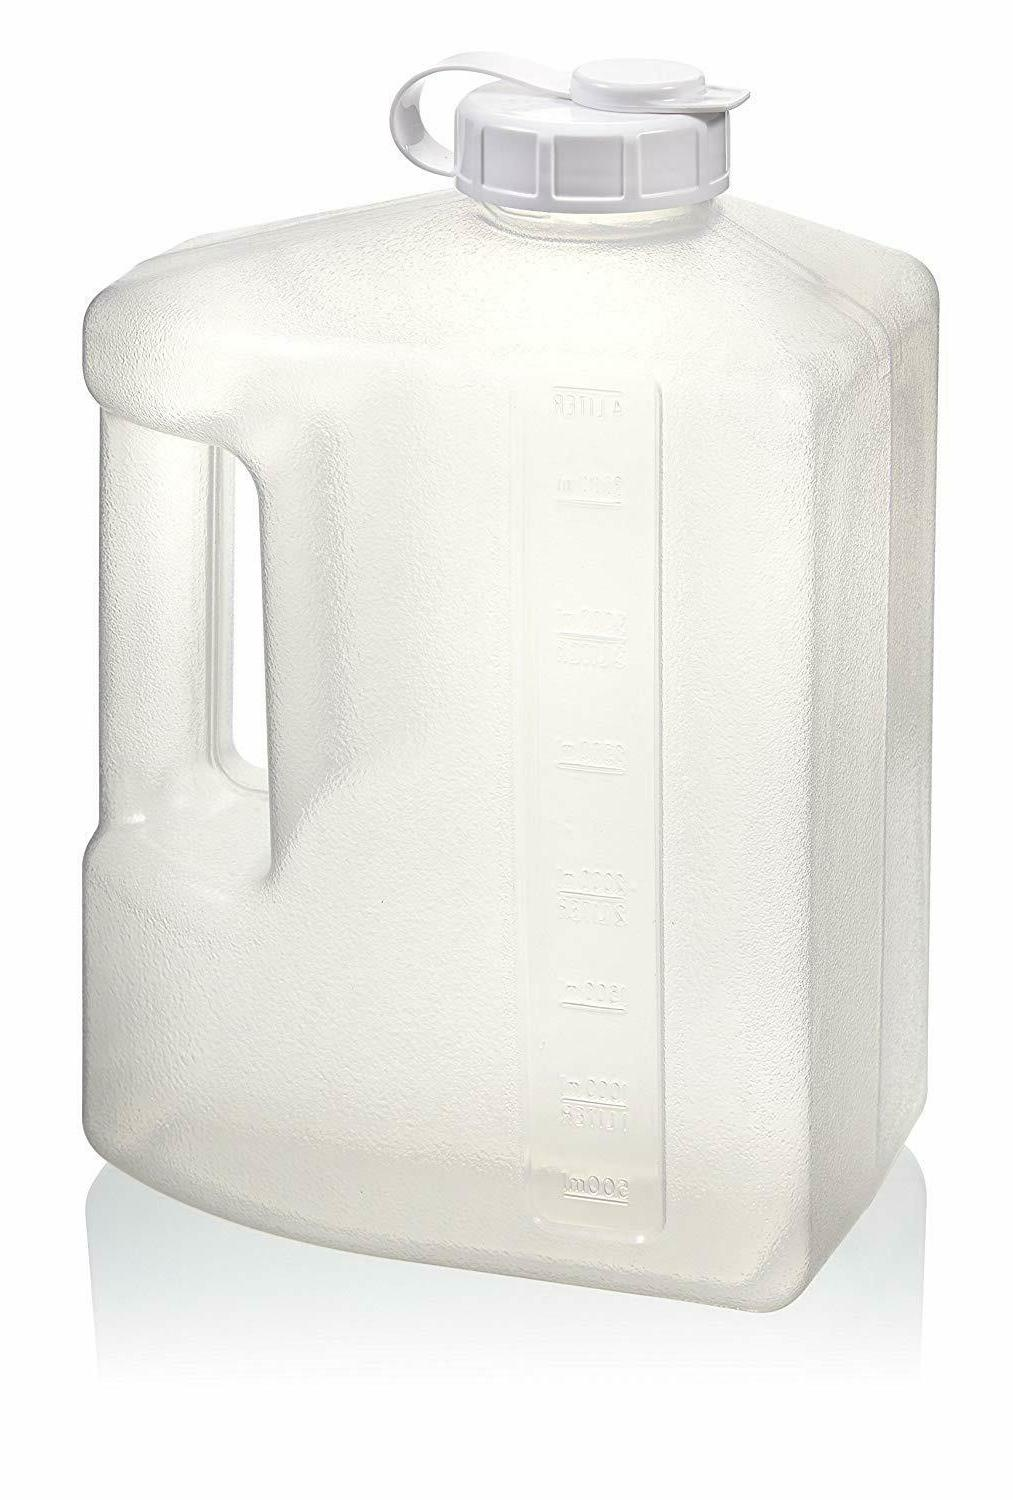 Arrow Home Products 1 Gallon Refrigerator Clear